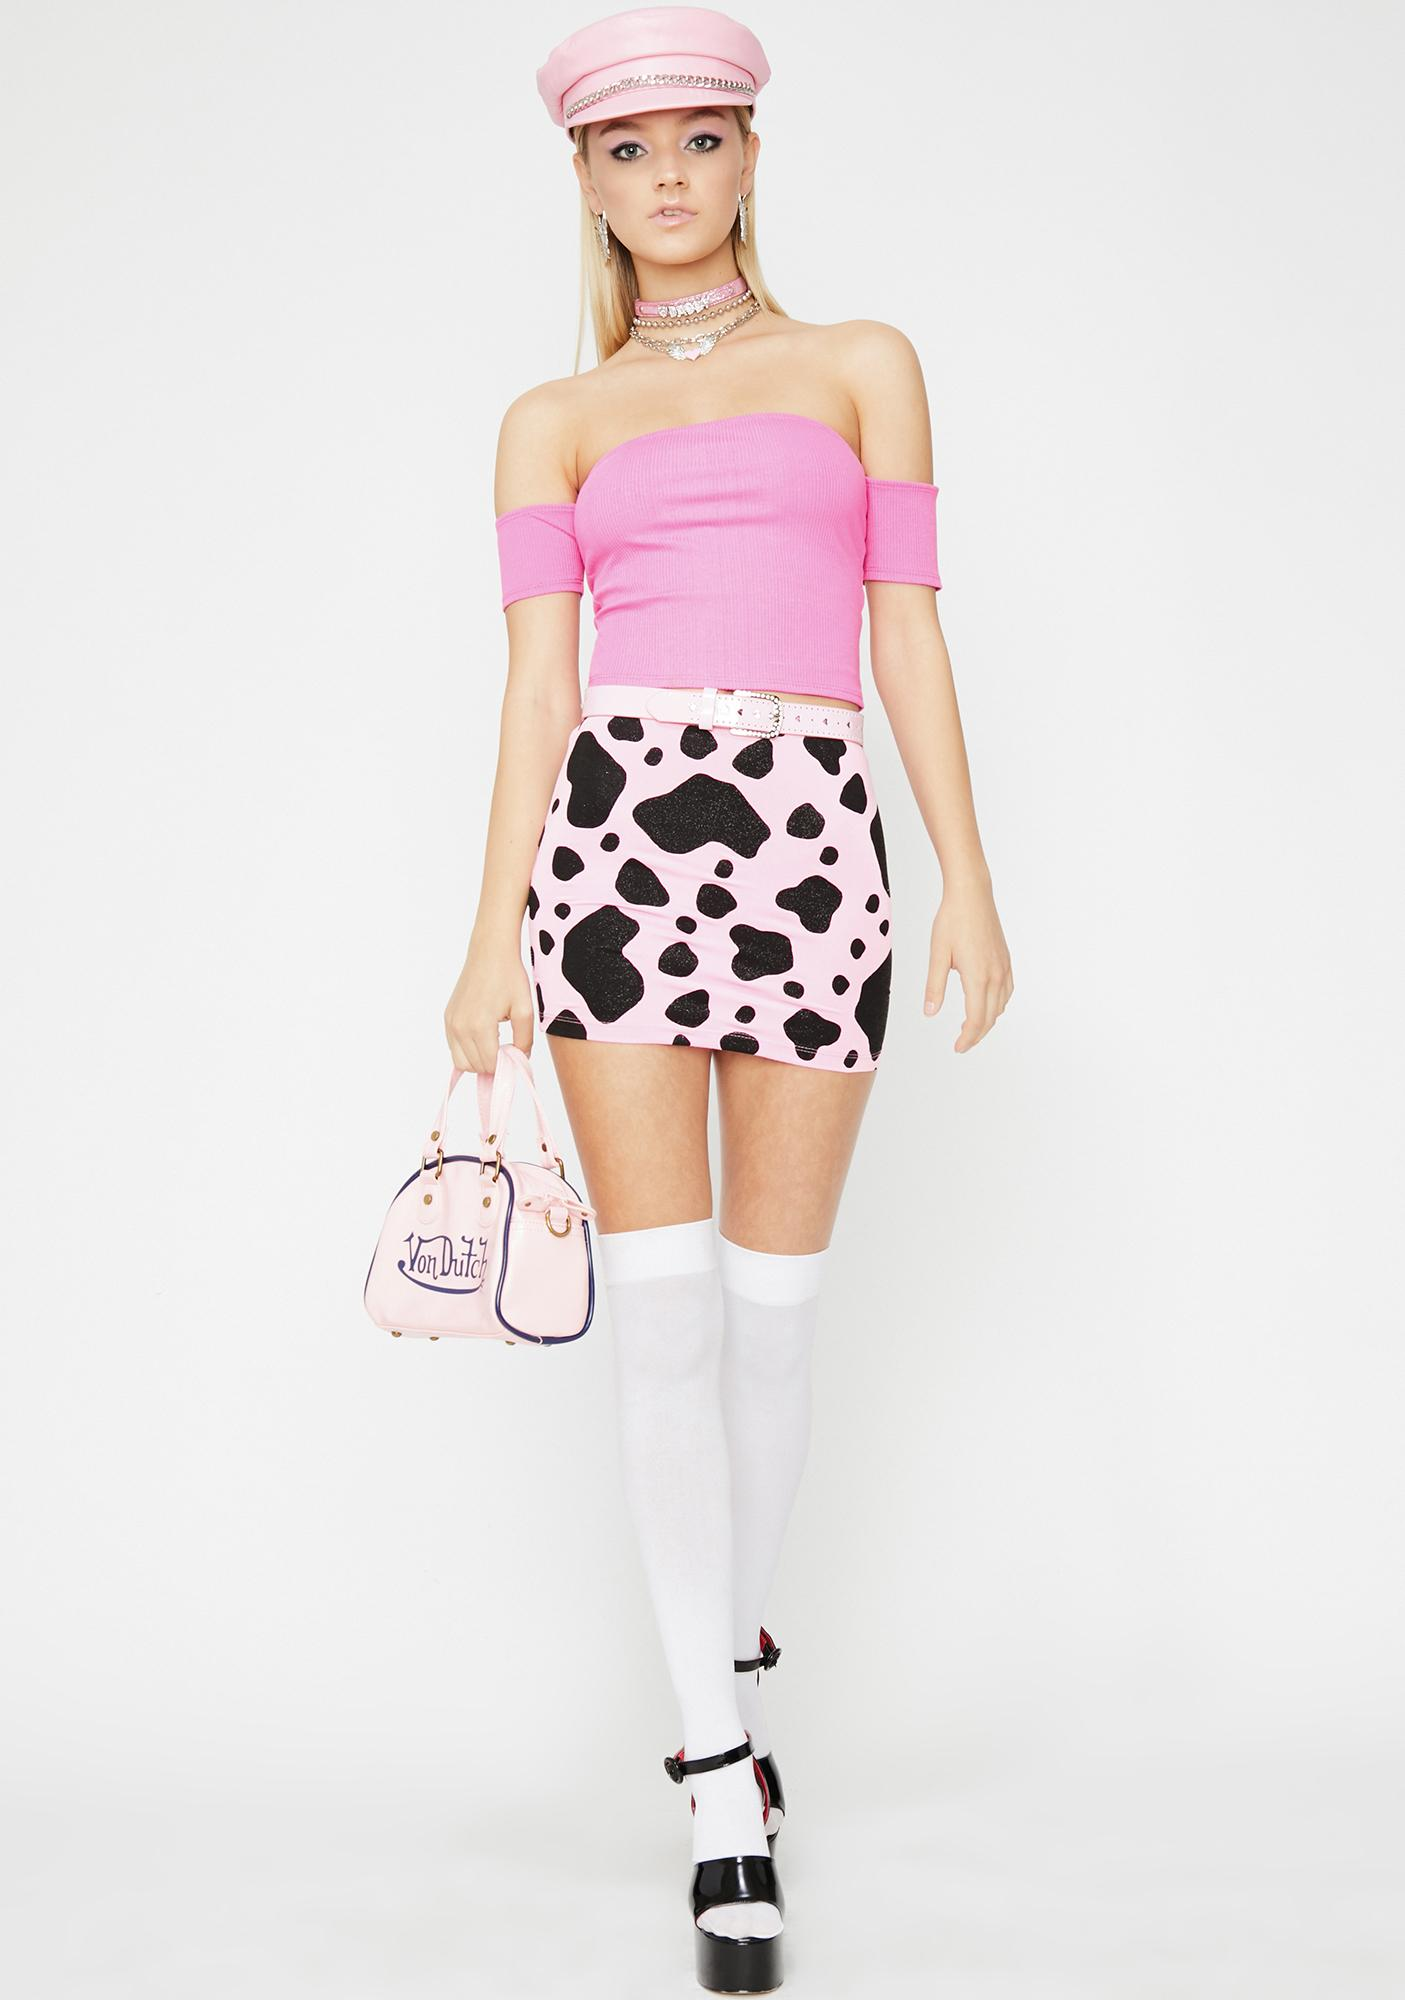 Candy Boo Thang Crop Top